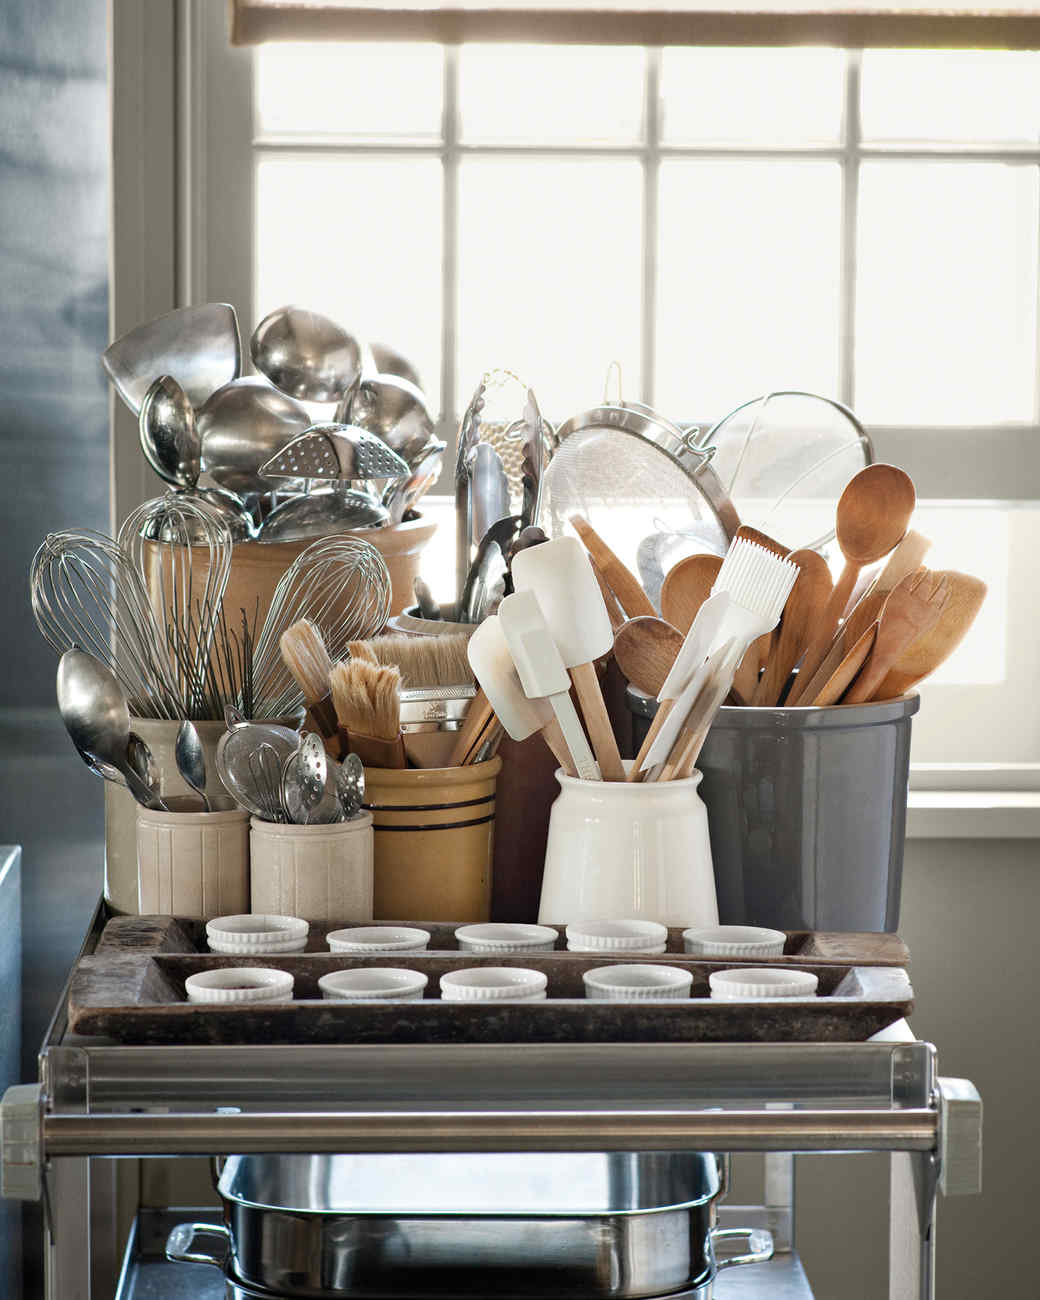 Kitchen Organization Tools: The Best Kitchen Organizing Tips